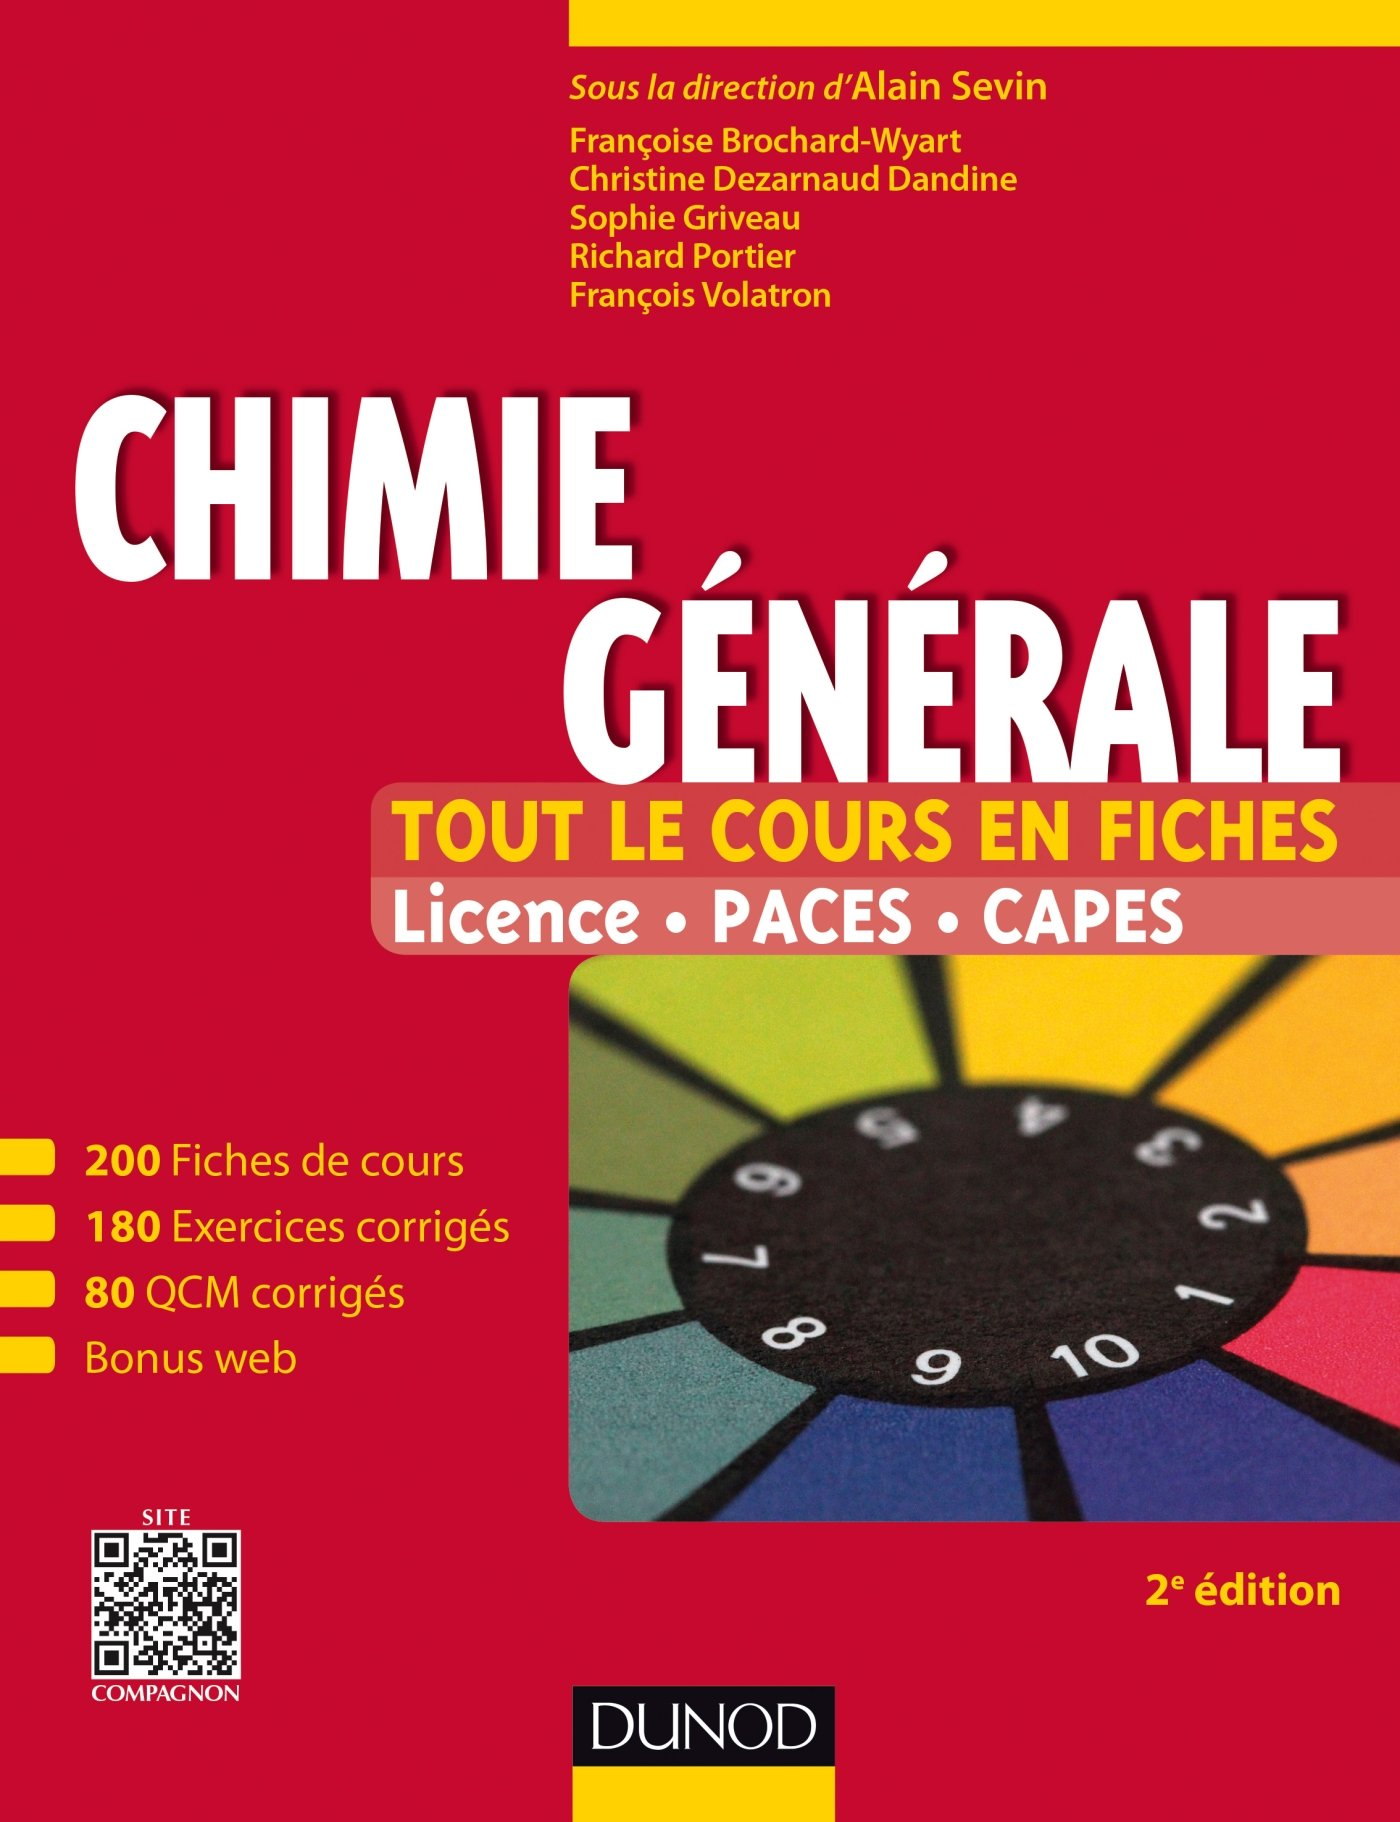 Chimie datant